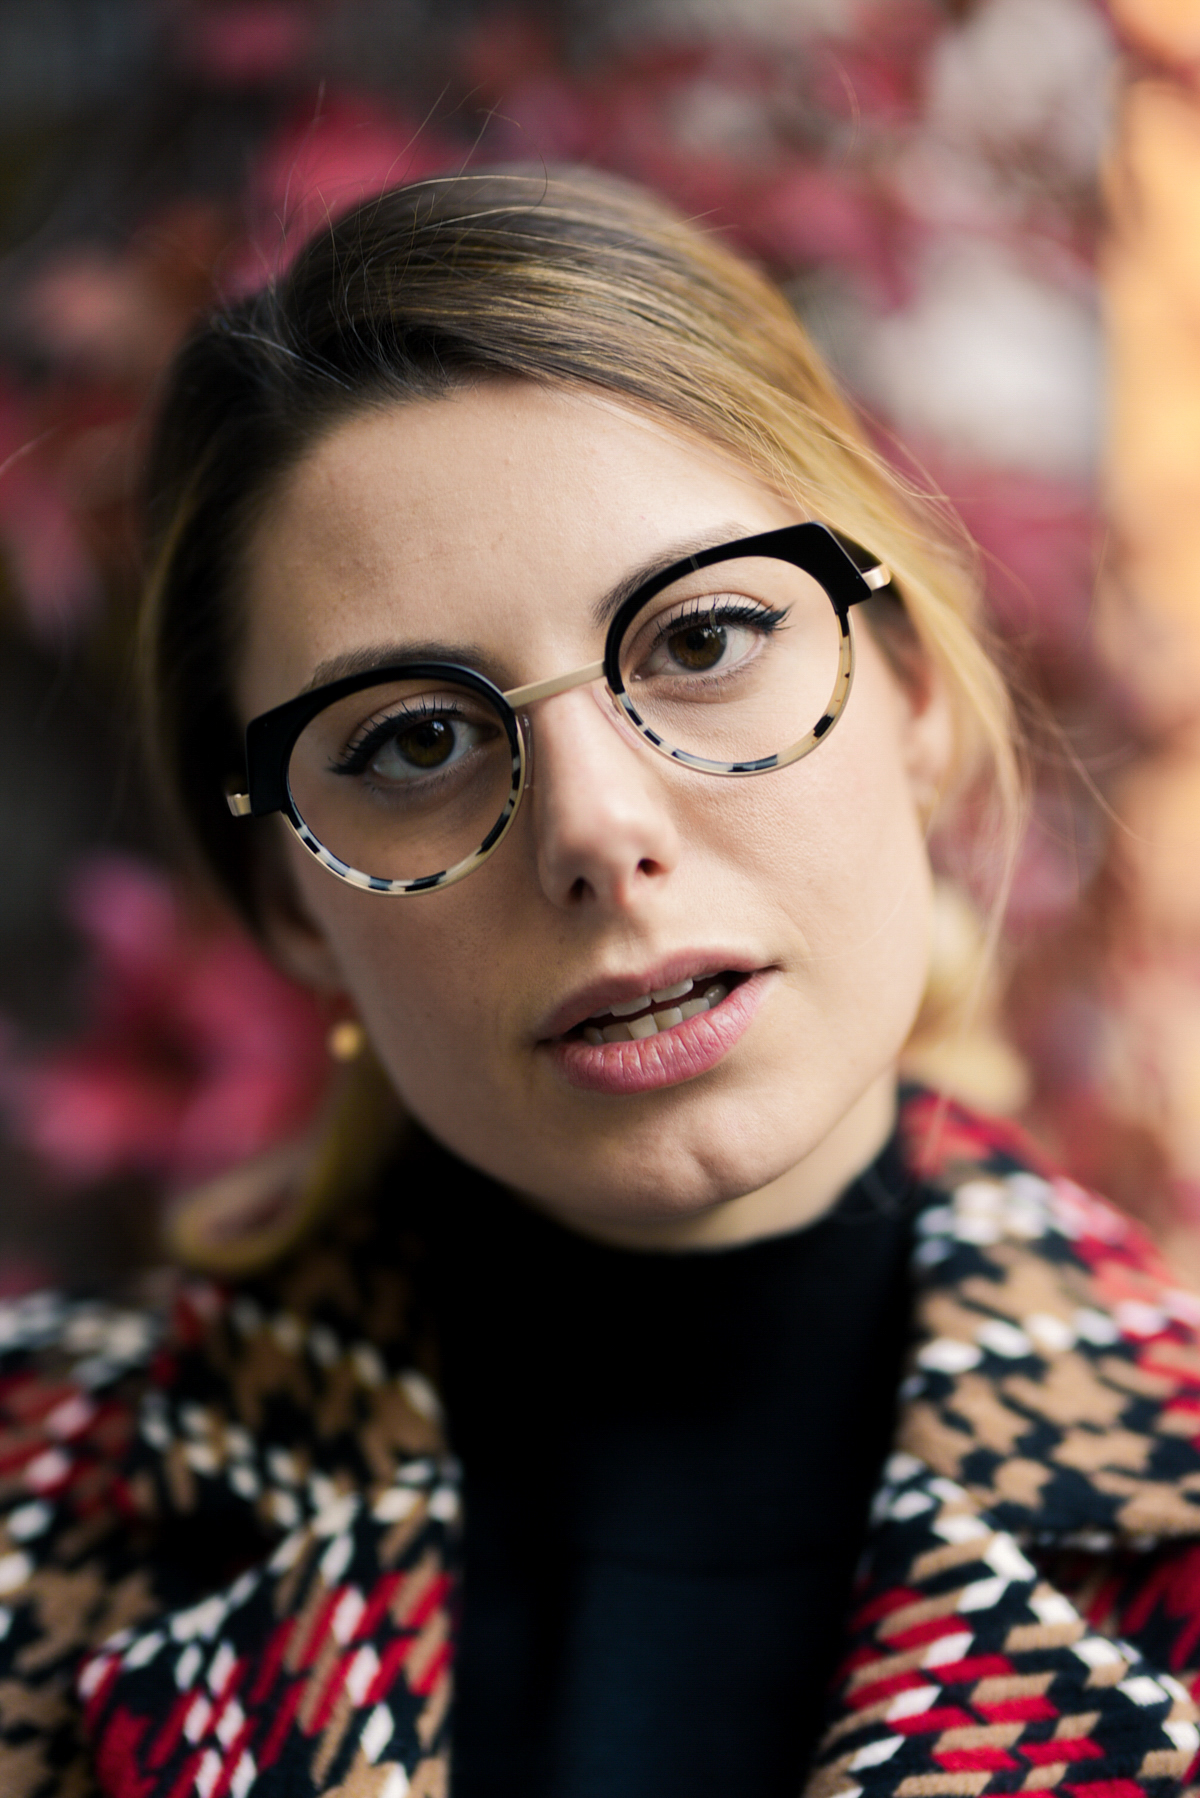 giulia de martin behind my glasses naoned french brand eyeglasses 2020 2019 -4